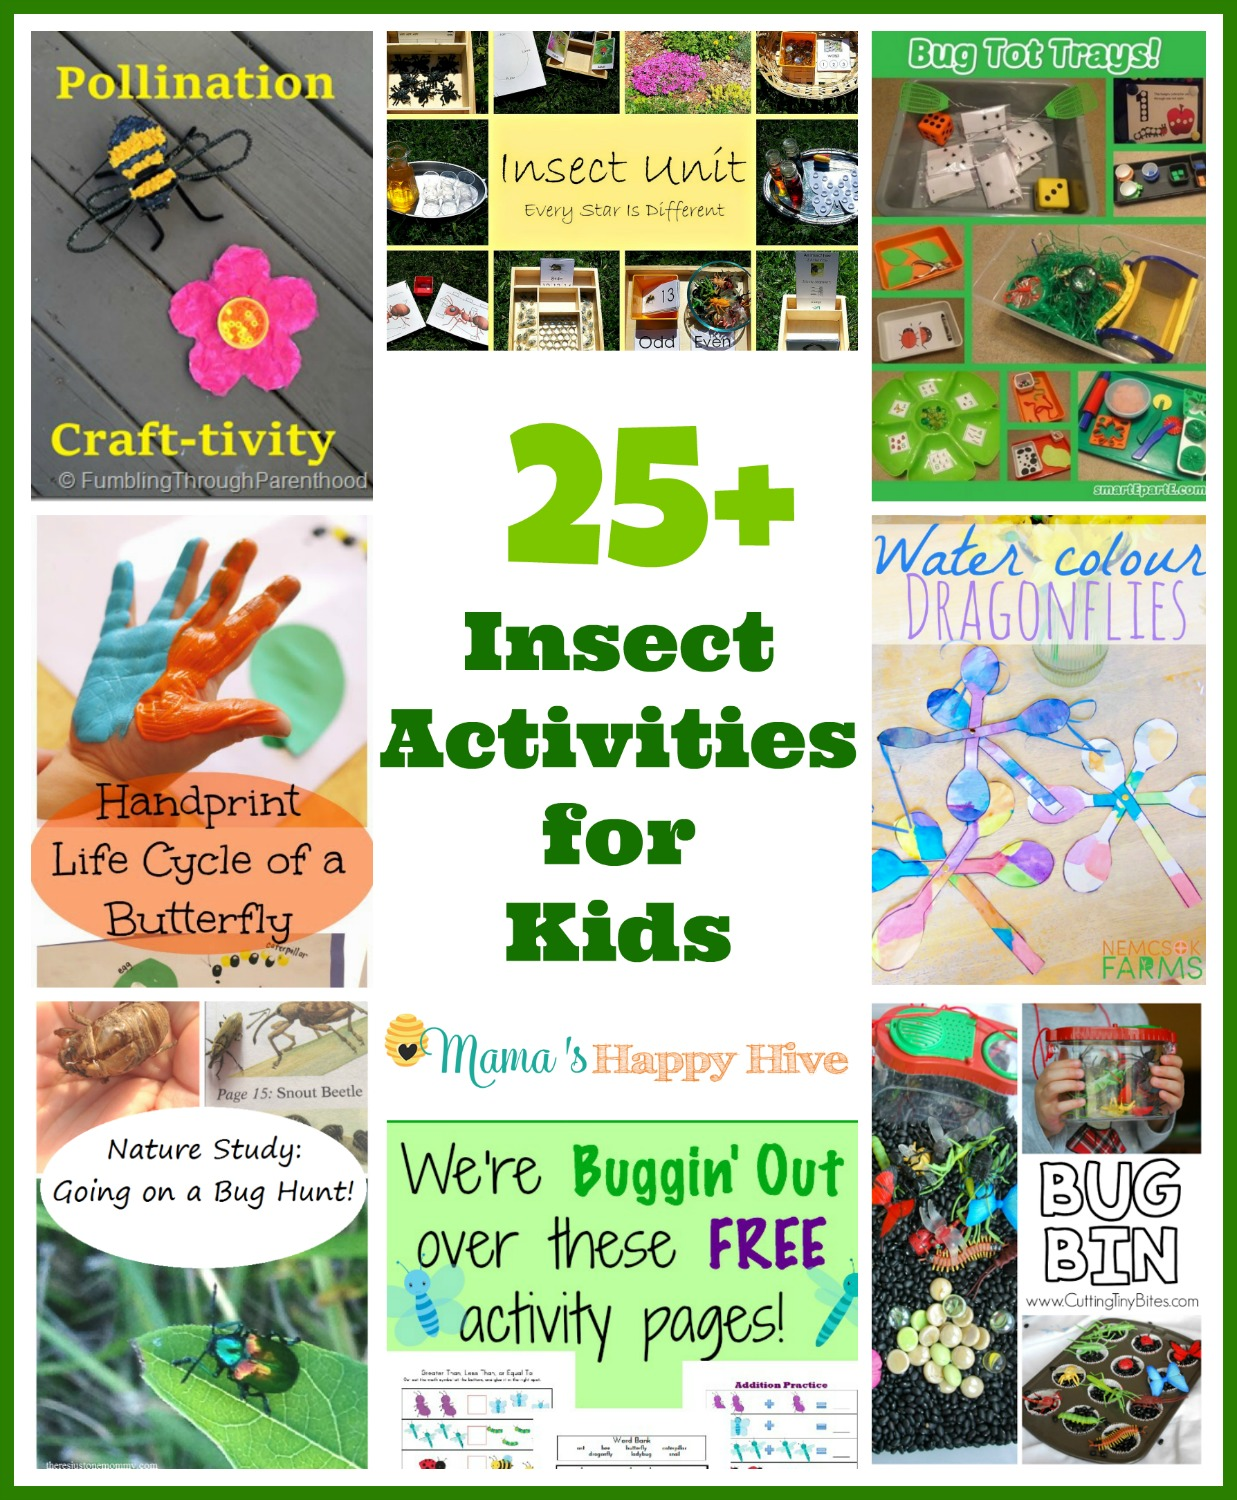 This collection of 25 insect activities for kids is full of fabulous ideas for studying bugs. There are activities for bee pollination, an entire insect unit with free printables, bug tot trays, life-cycle of a butterfly, water color dragonflies, outdoor nature hunt, free bug activity page printables, sensory bug bin, butterfly printables, and hands-on learning about bees. - www.mamashappyhive.com